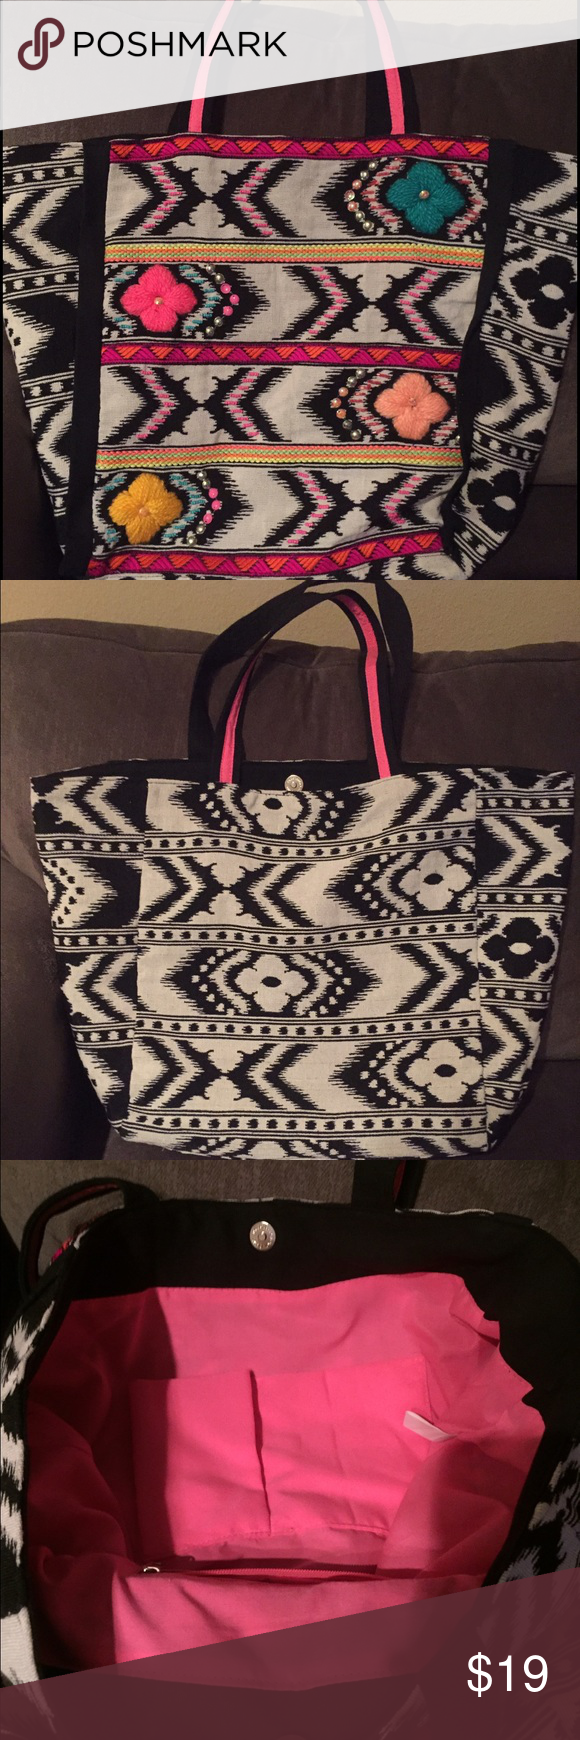 Stephanie Nicole boho tote Boho tote with a beautiful pattern. Smoke and pet free home. In excellent condition. Rarely used. Stephanie Nicole Bags Totes